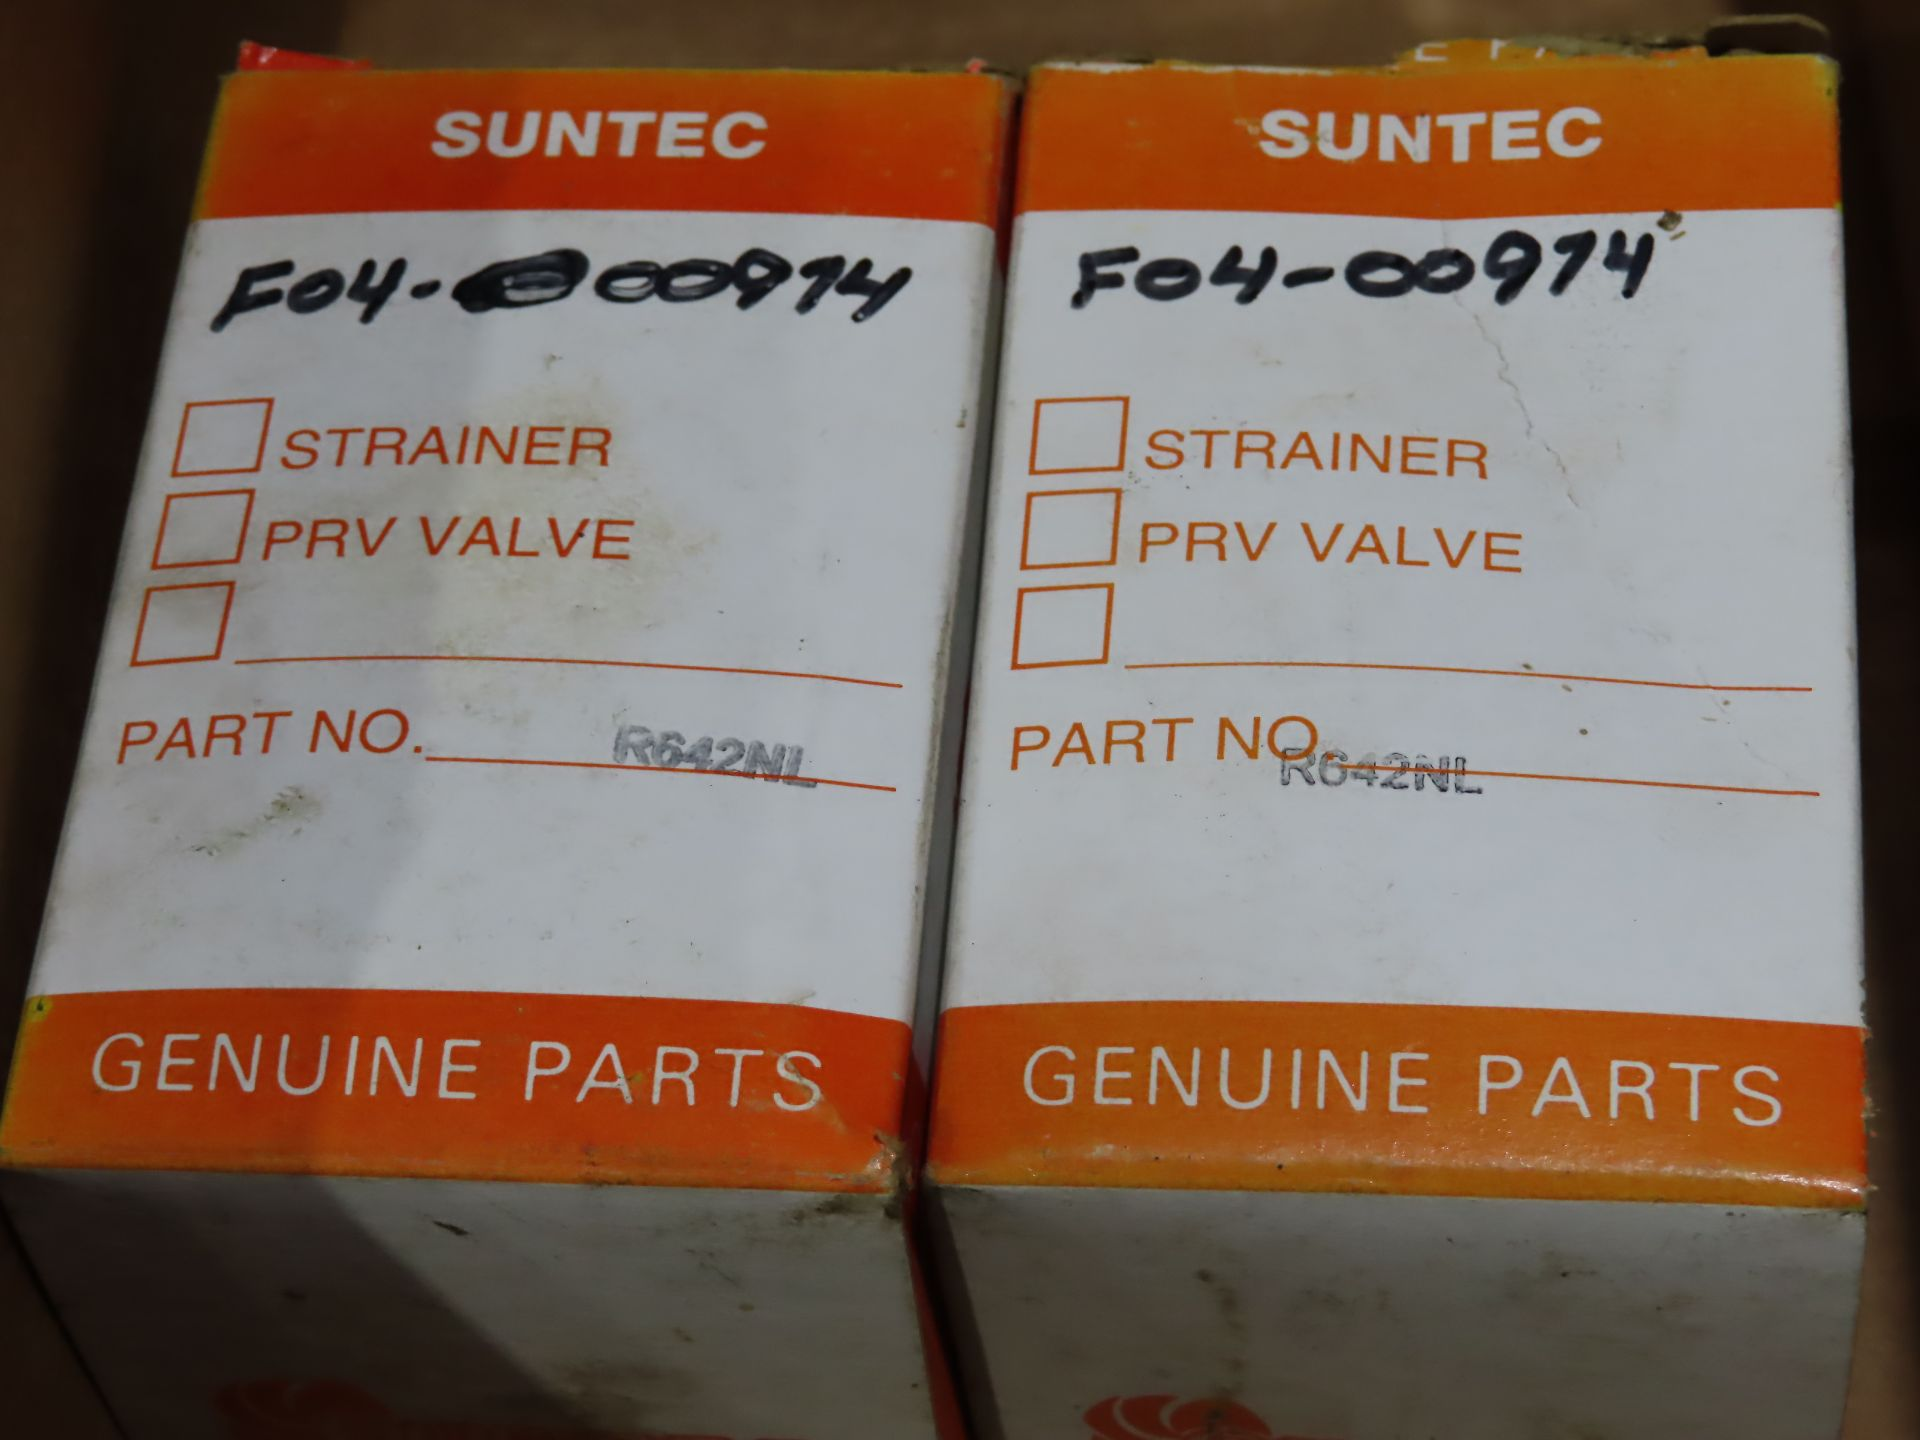 Lot 74 - Qty 2 Suntec model R642NL, new in boxes, as always, with Brolyn LLC auctions, all lots can be picked